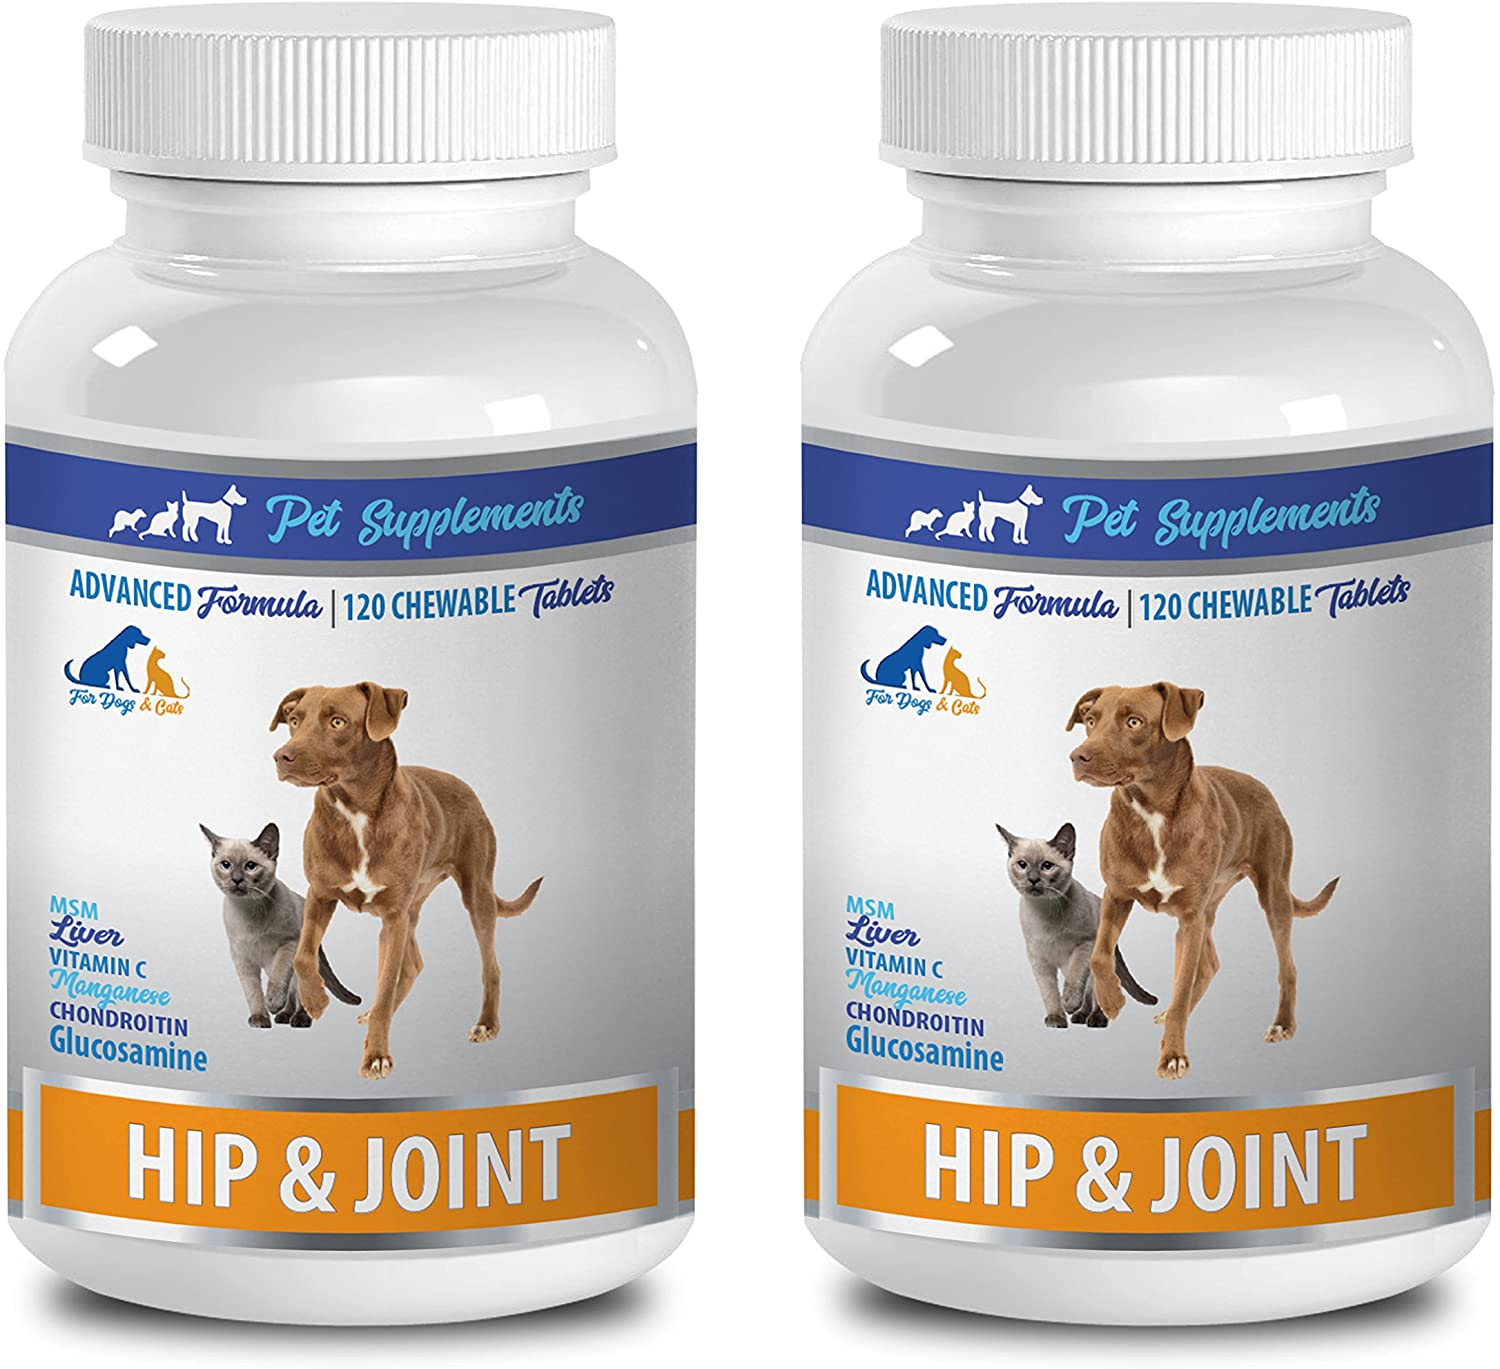 Pet Supplements joint health for cats - PET HIP AND JOINT CARE - FOR CATS AND DOGS - HEALTHY CHOICE - CHEWY TREAT - cat vitamins senior - 2 Bottle (240 Chews)